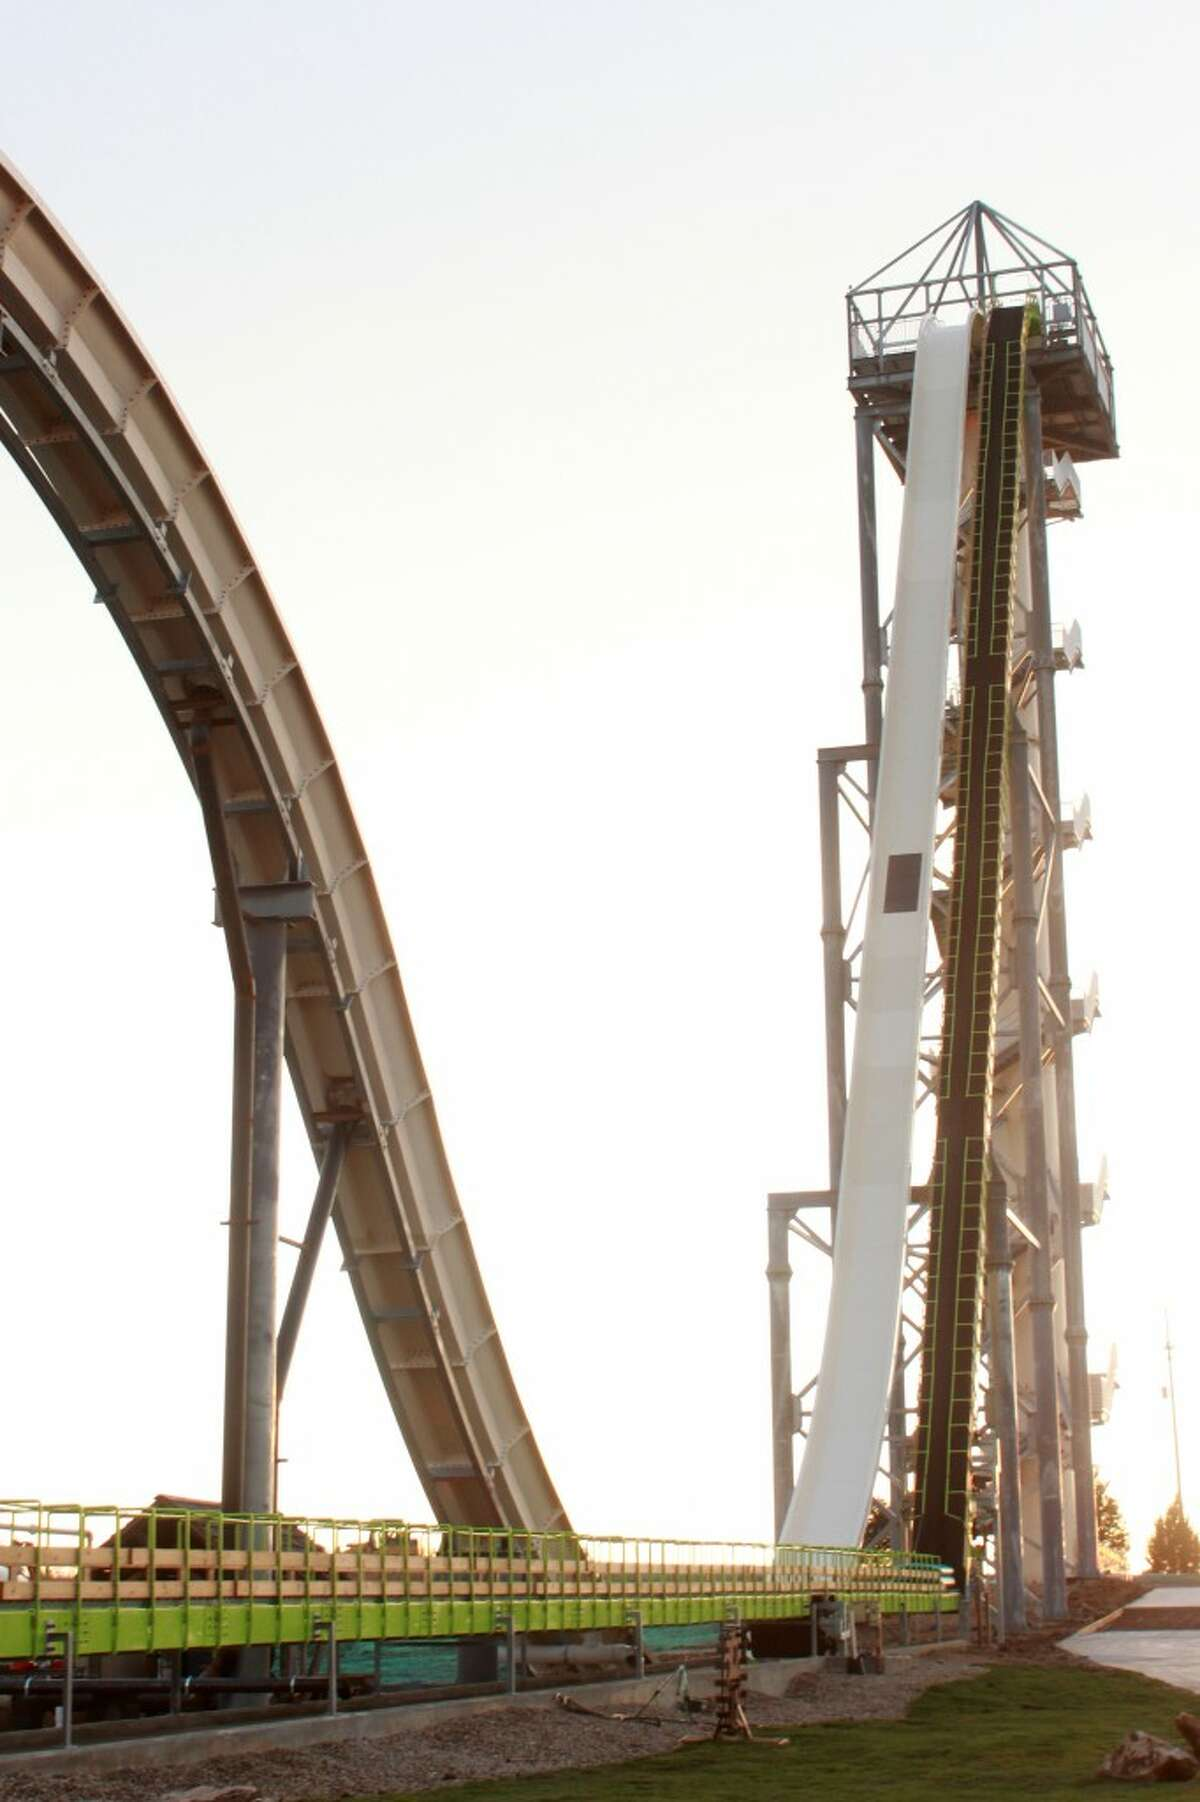 The slide is a Guinness-certified world record holder for the world's tallest water slide. It beat out the Insano in Brazil, which is 134 feet tall.That makes Verruckt taller than Niagara Falls, which is 167 feet tall.